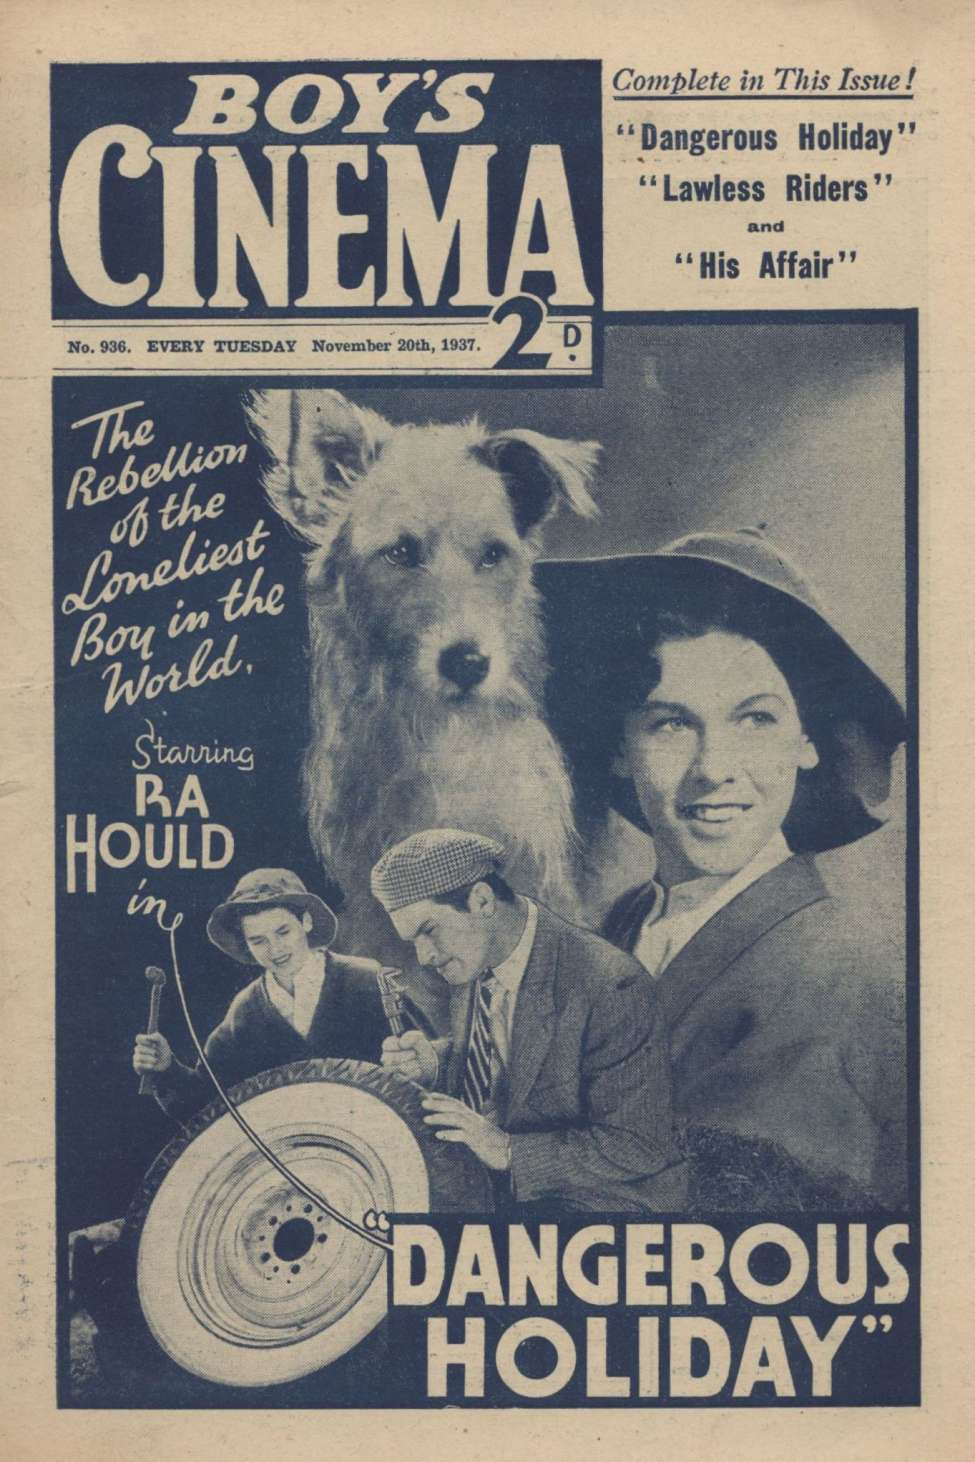 Comic Book Cover For Boy's Cinema 0936 - Dangerous Holiday starring Ra Hould